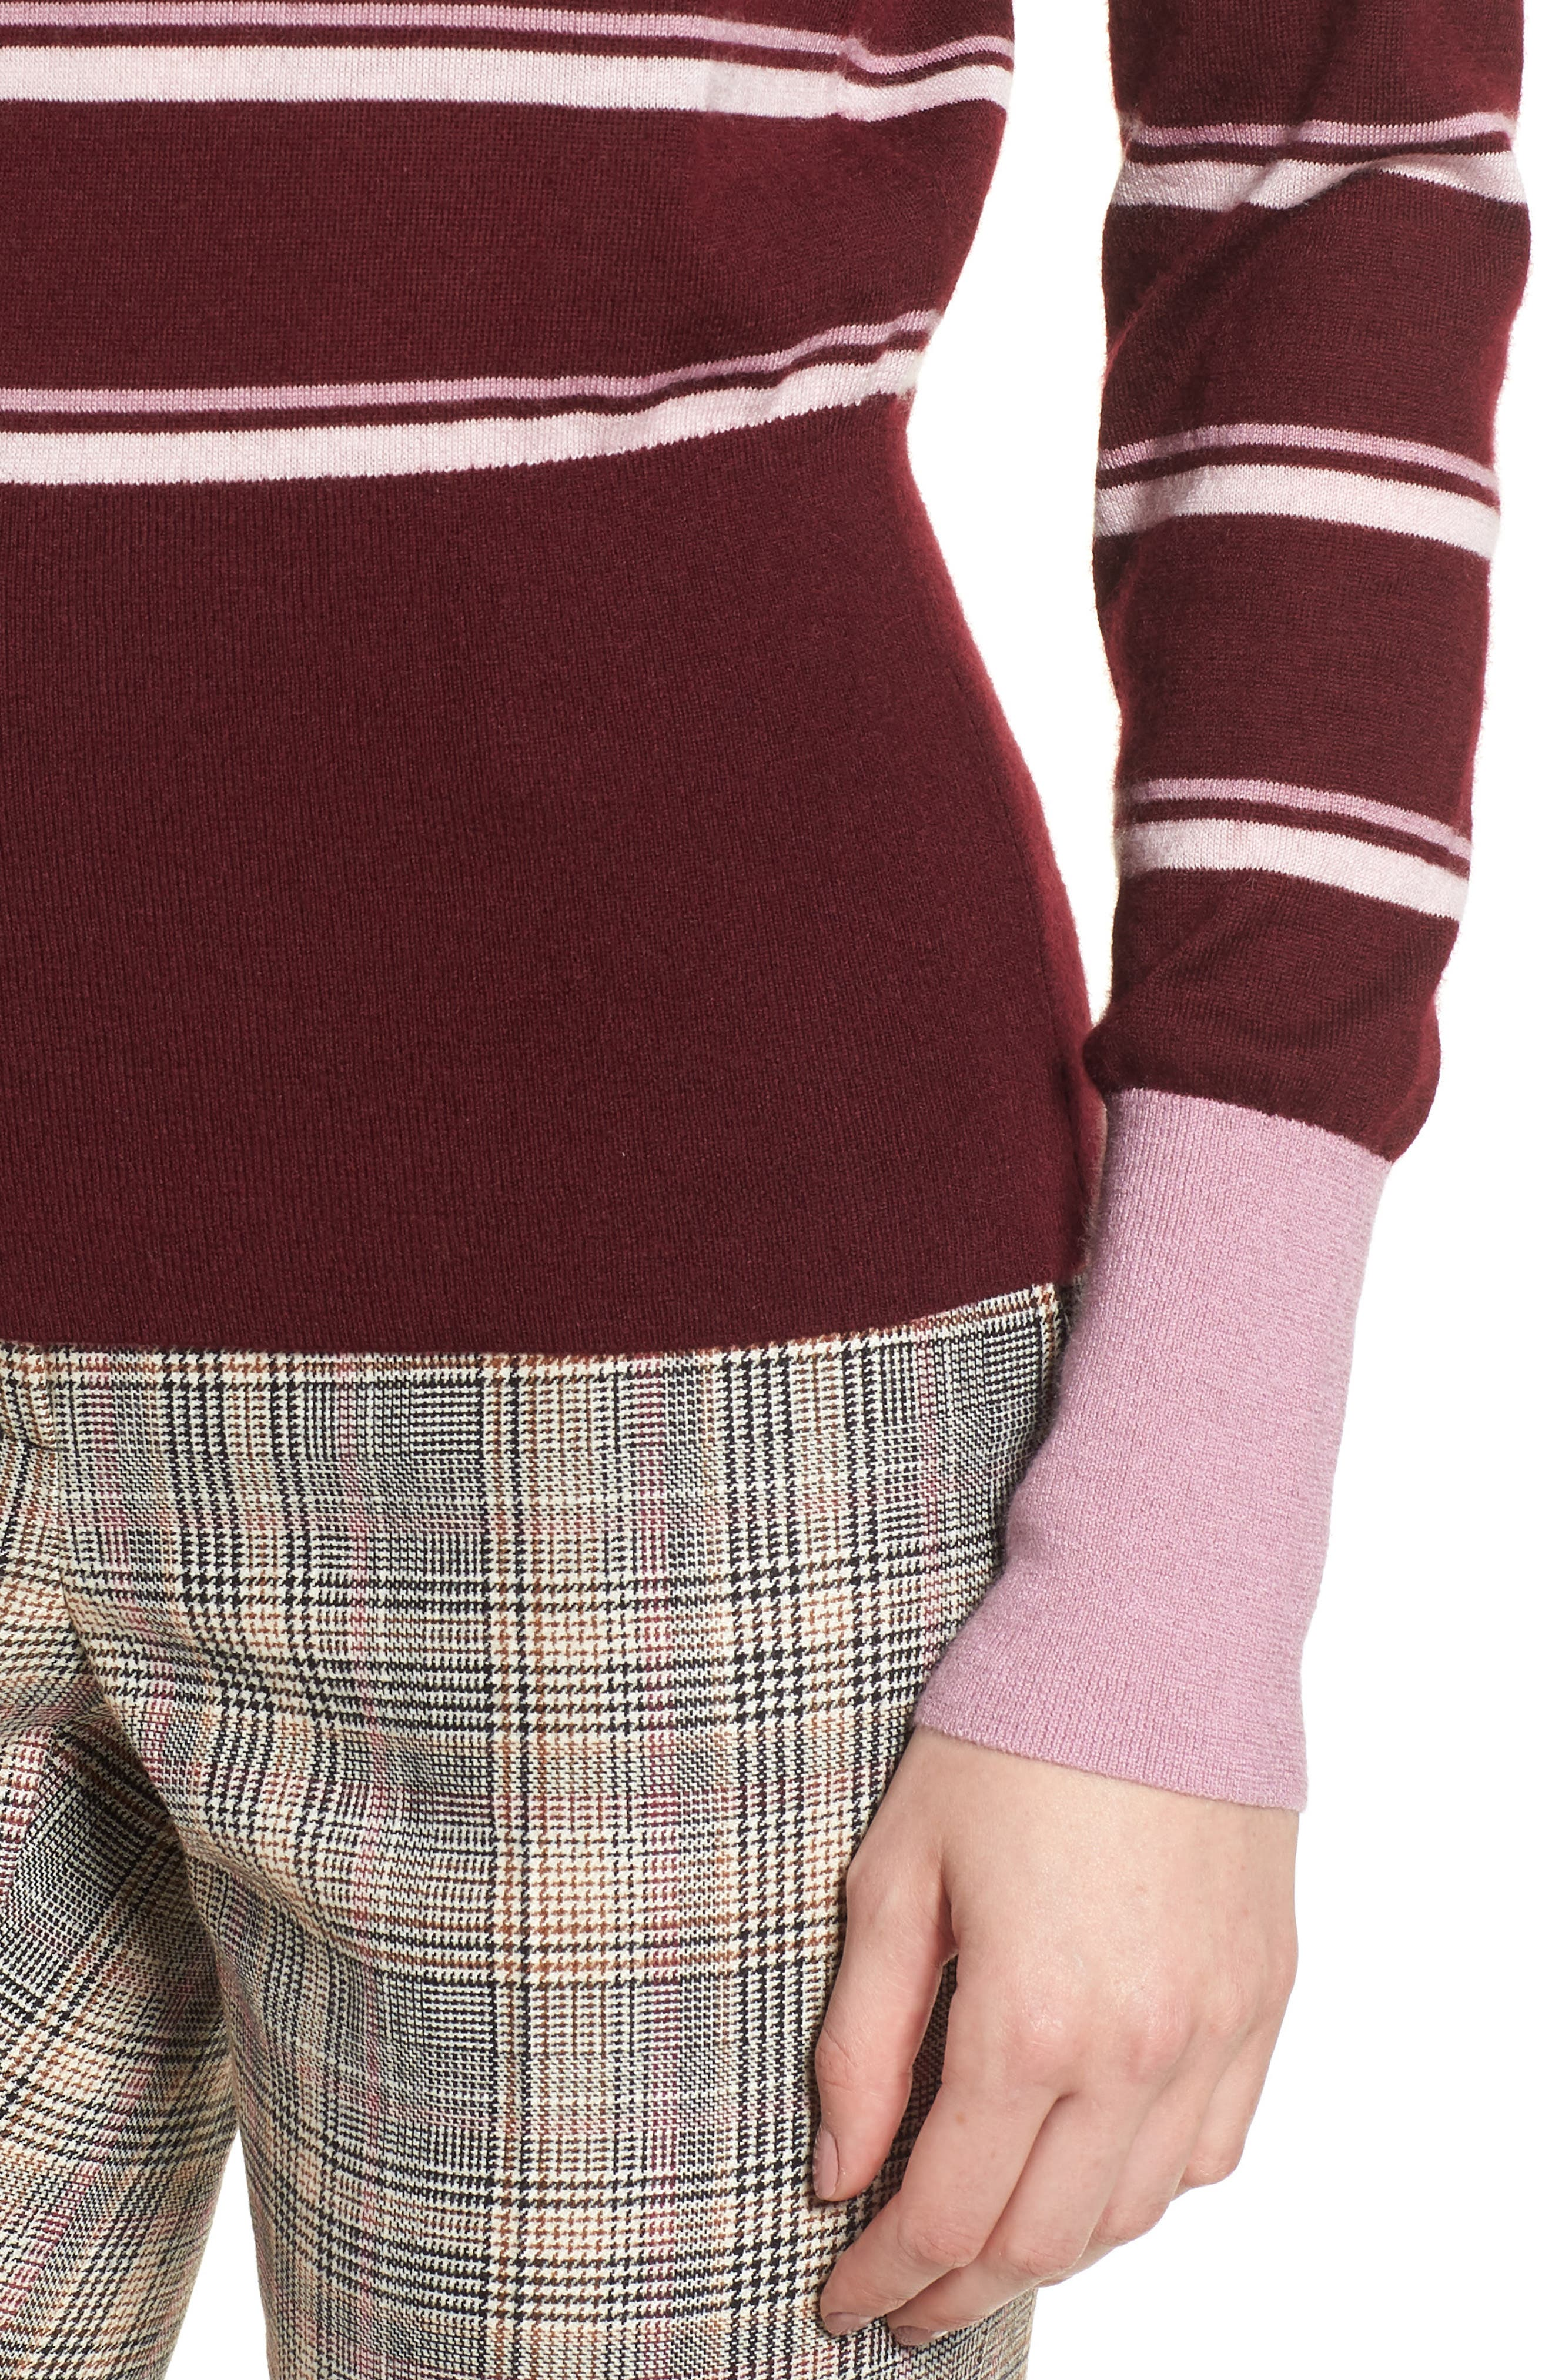 Stripe Cashmere Sweater,                             Alternate thumbnail 4, color,                             BURGUNDY STEP STRIPE